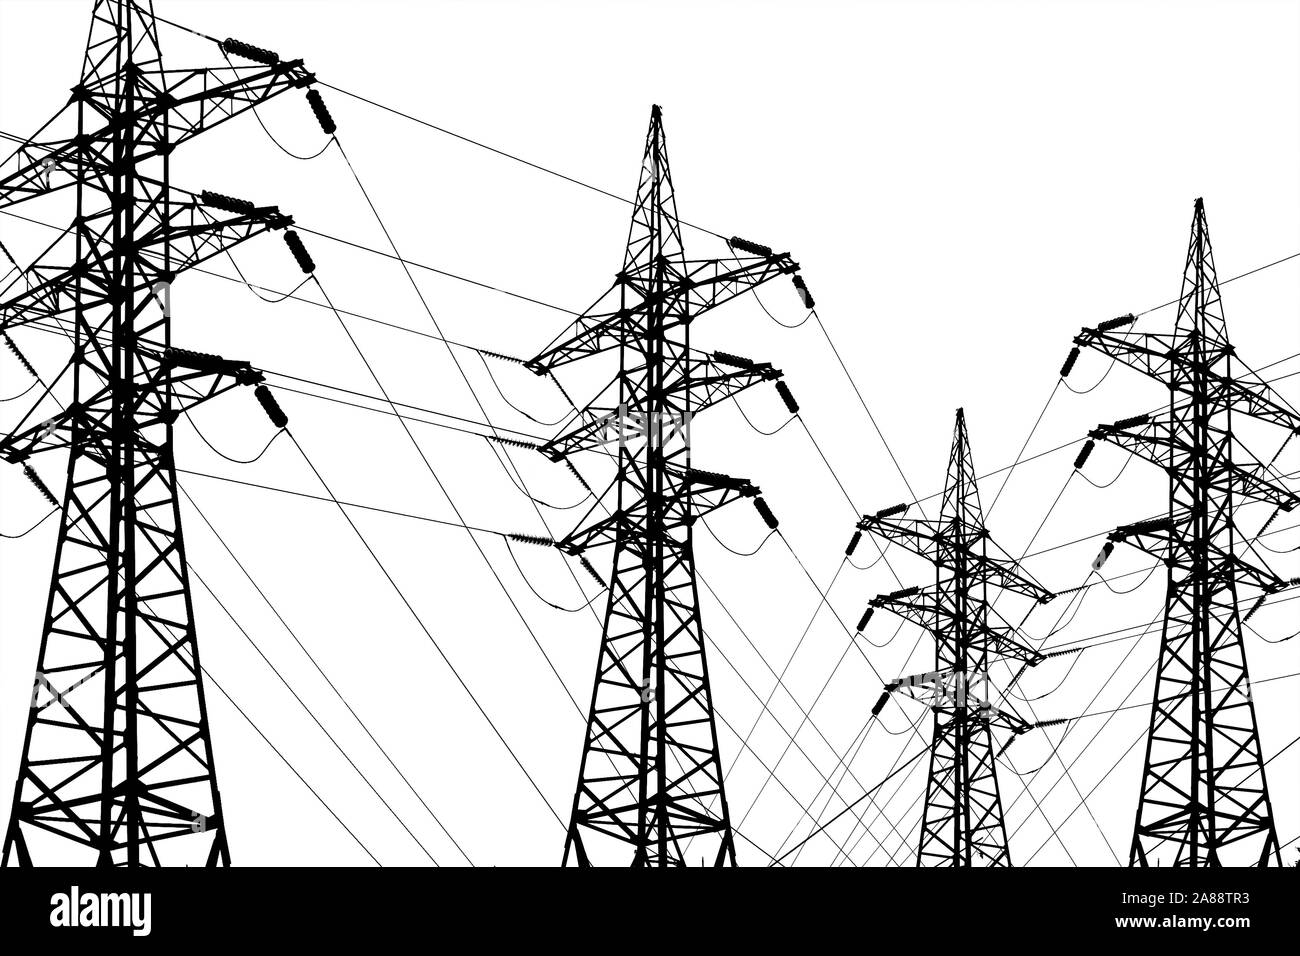 Electricity transmission lines with wires and towers. Black and white line art drawing illustration. Concept of electric power supply, alternative ene Stock Photo